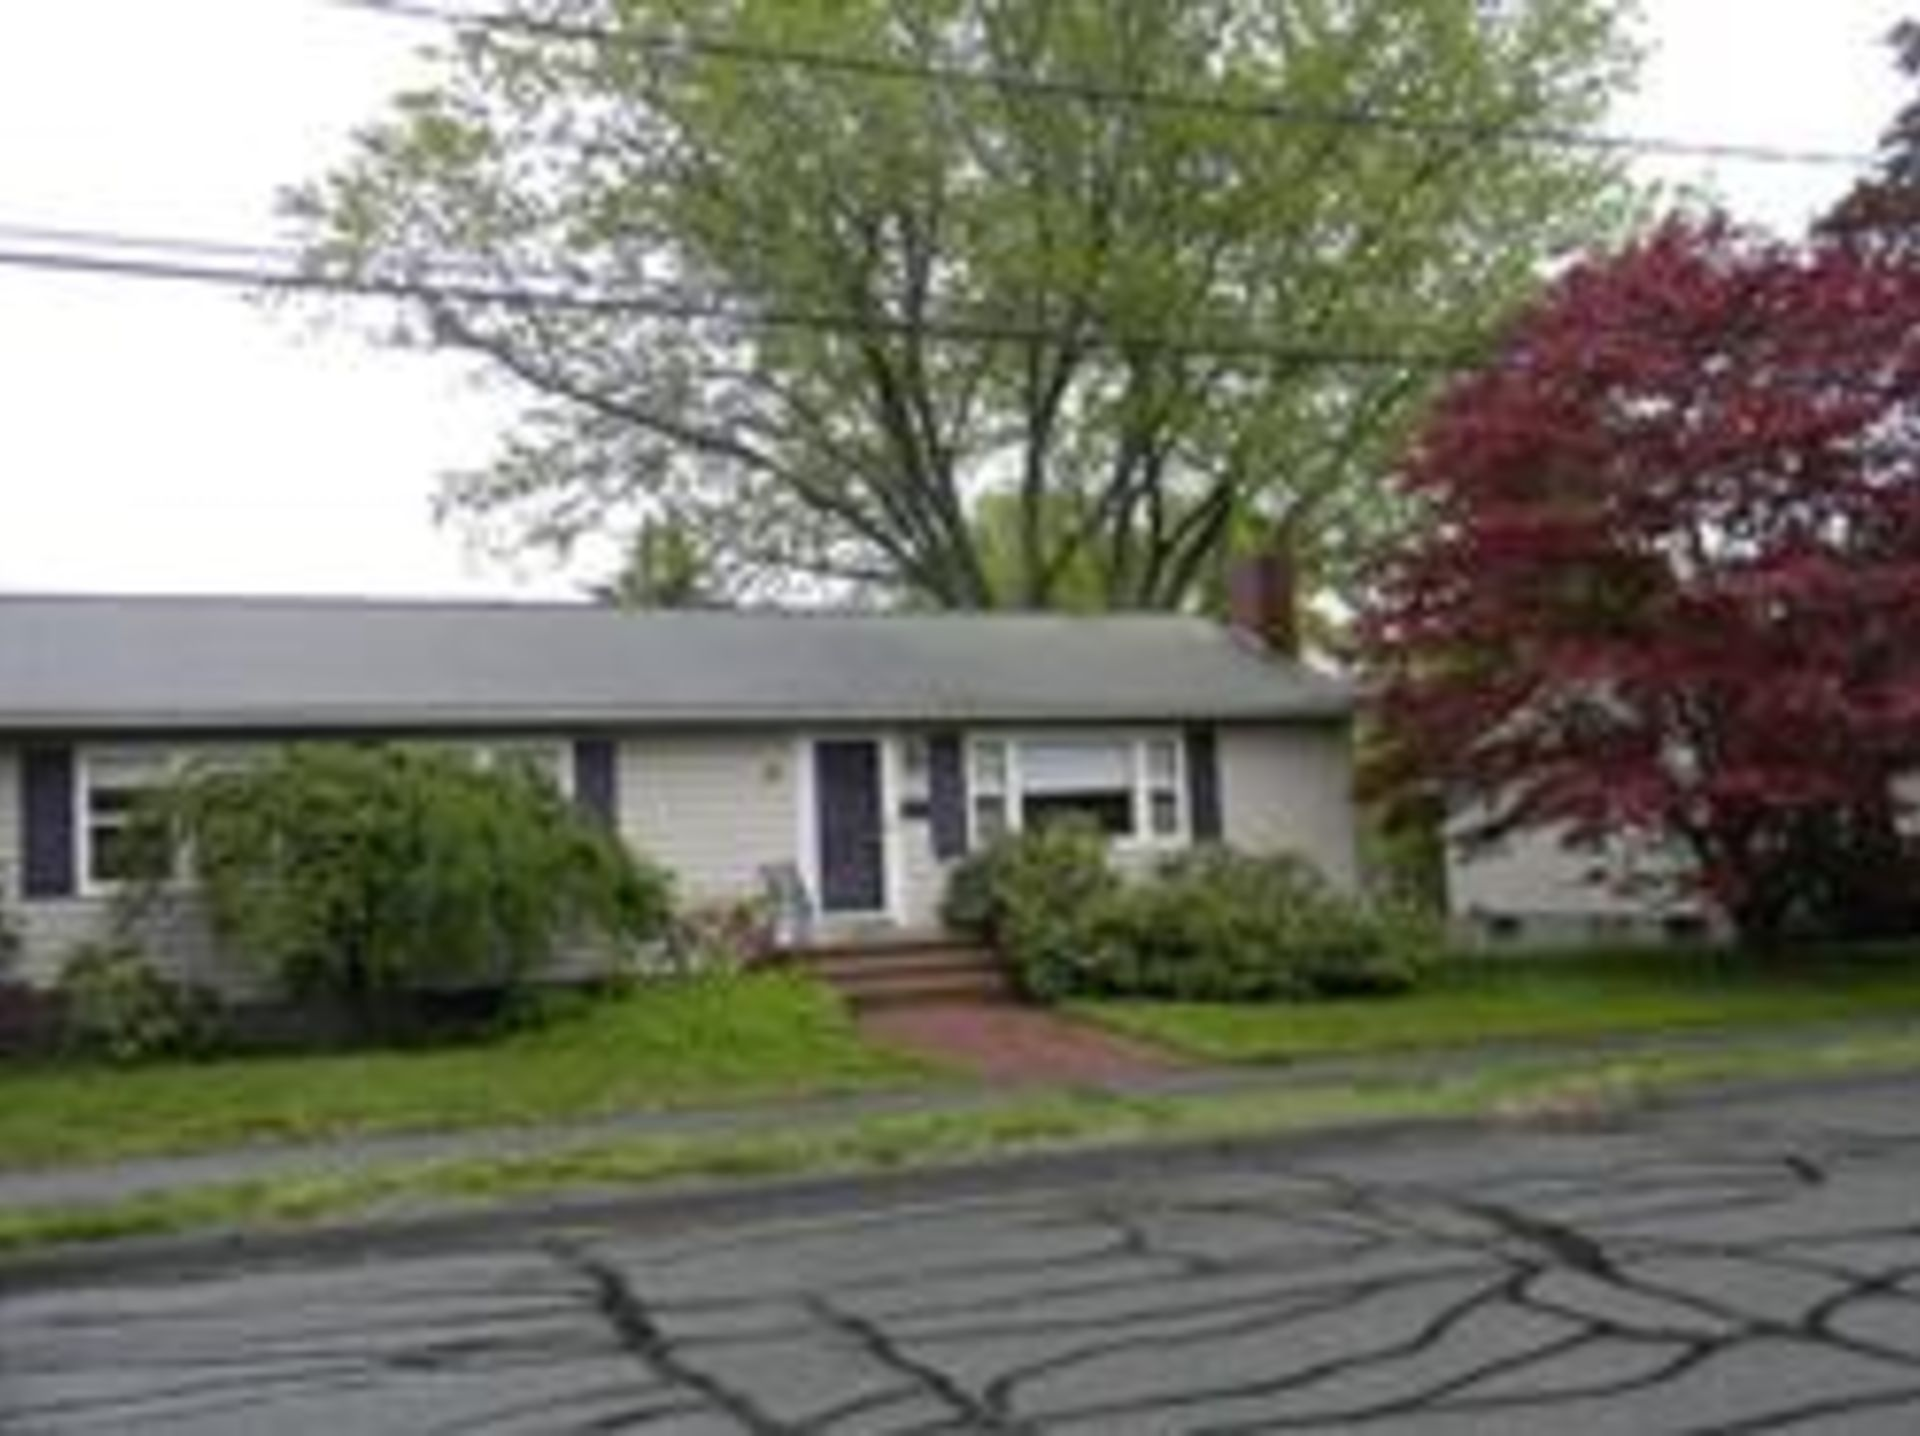 For Rent Danvers MA 01923 Single Family Home